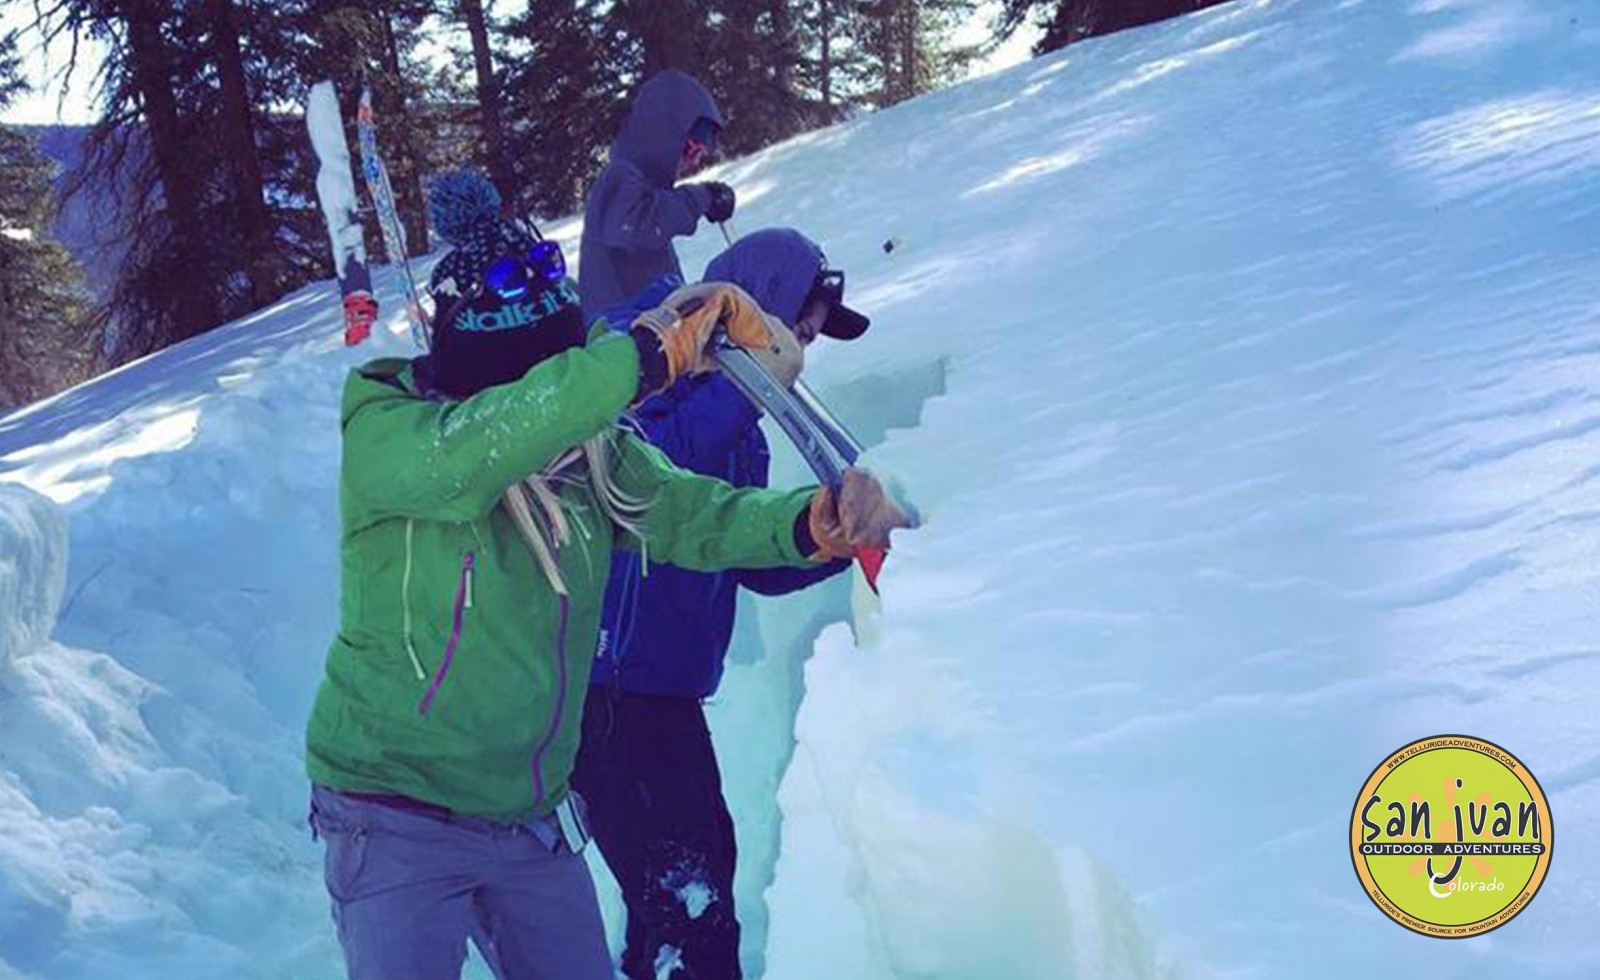 Avalanche Training students dig a snowsuit in Telluride Colorado